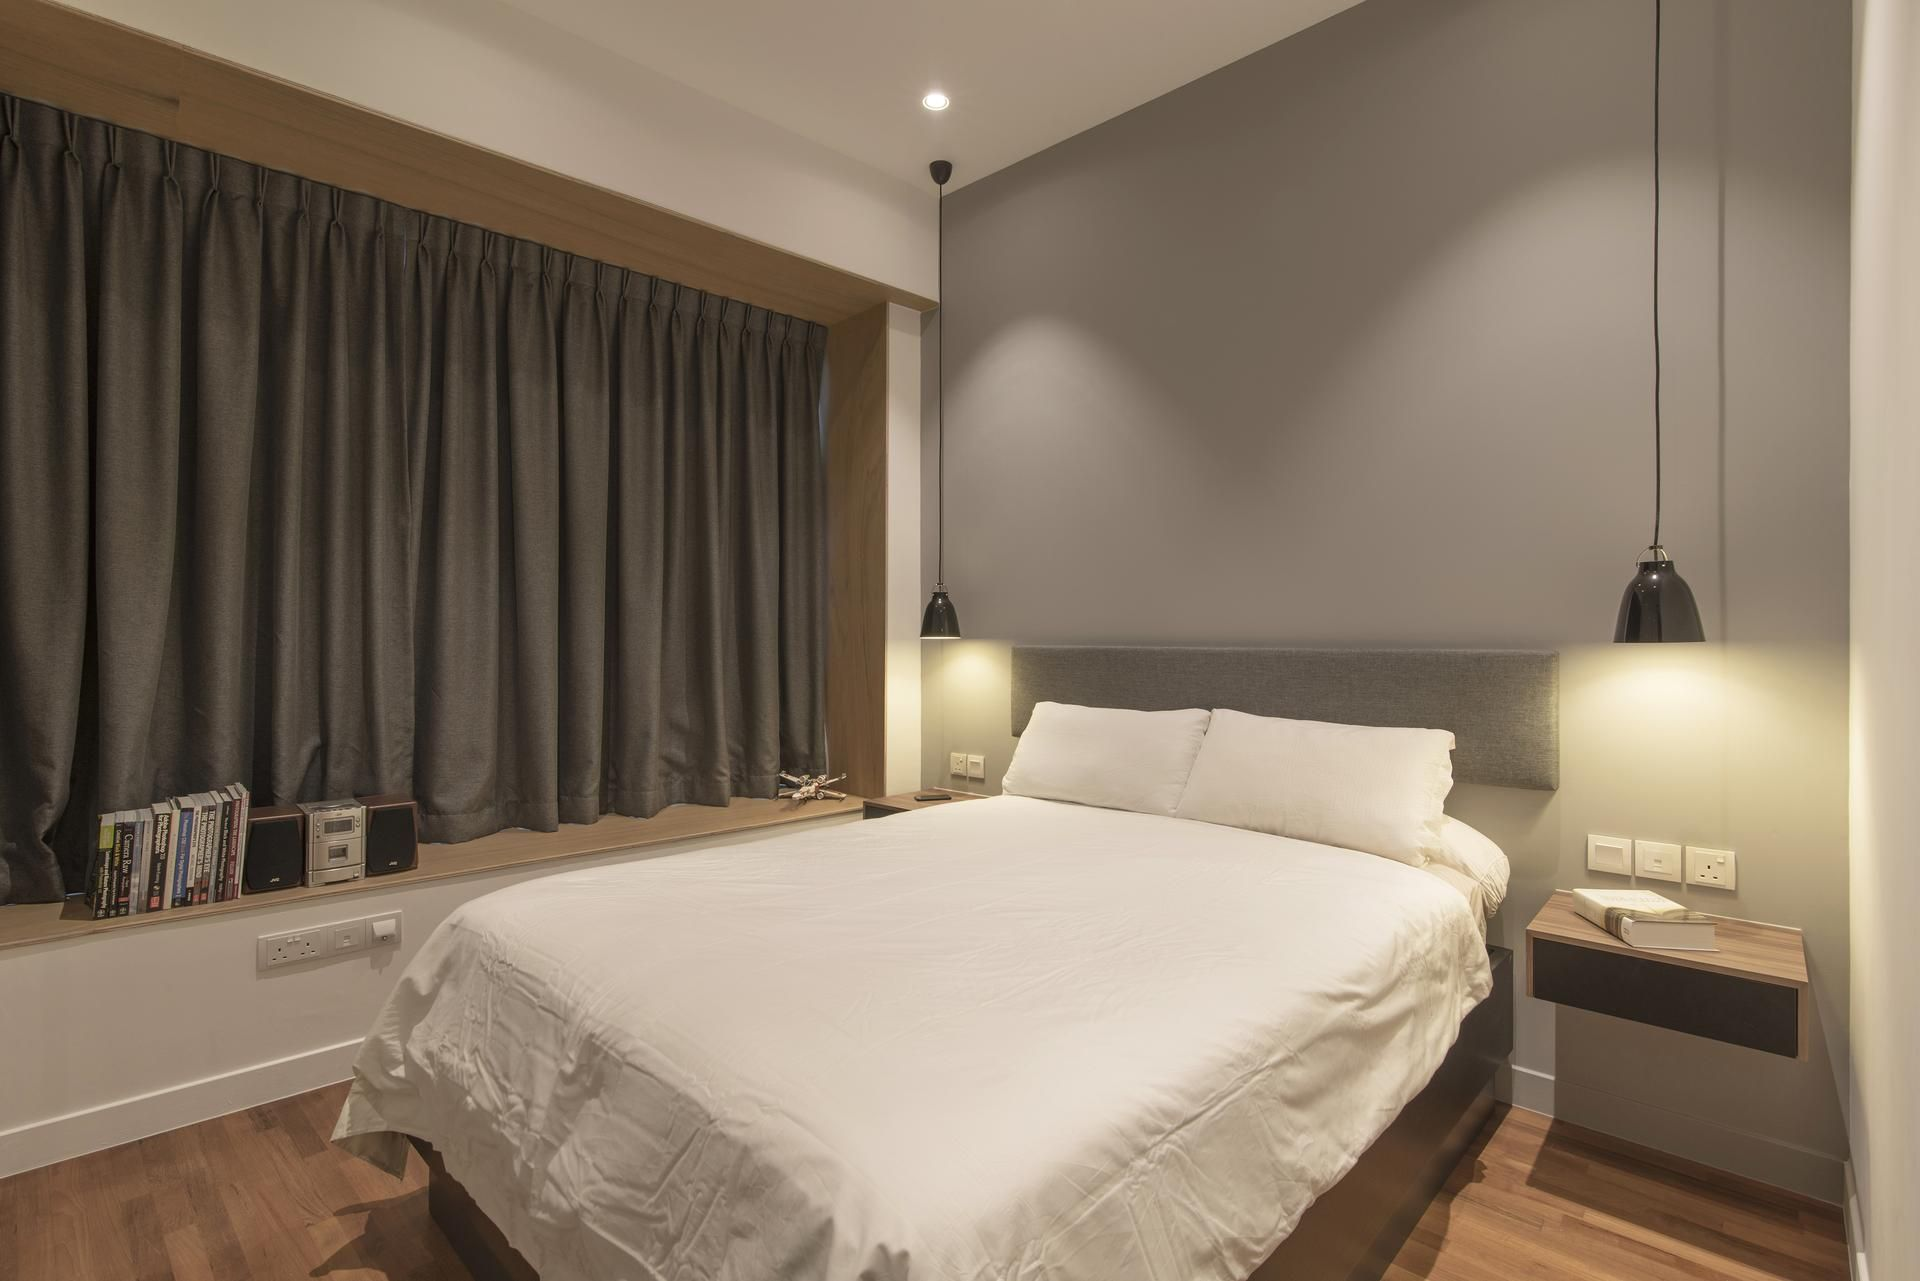 House Decoration Bedroom Minimalist Remodelling D'leedon  Qanvast  Home Design Renovation Remodelling .